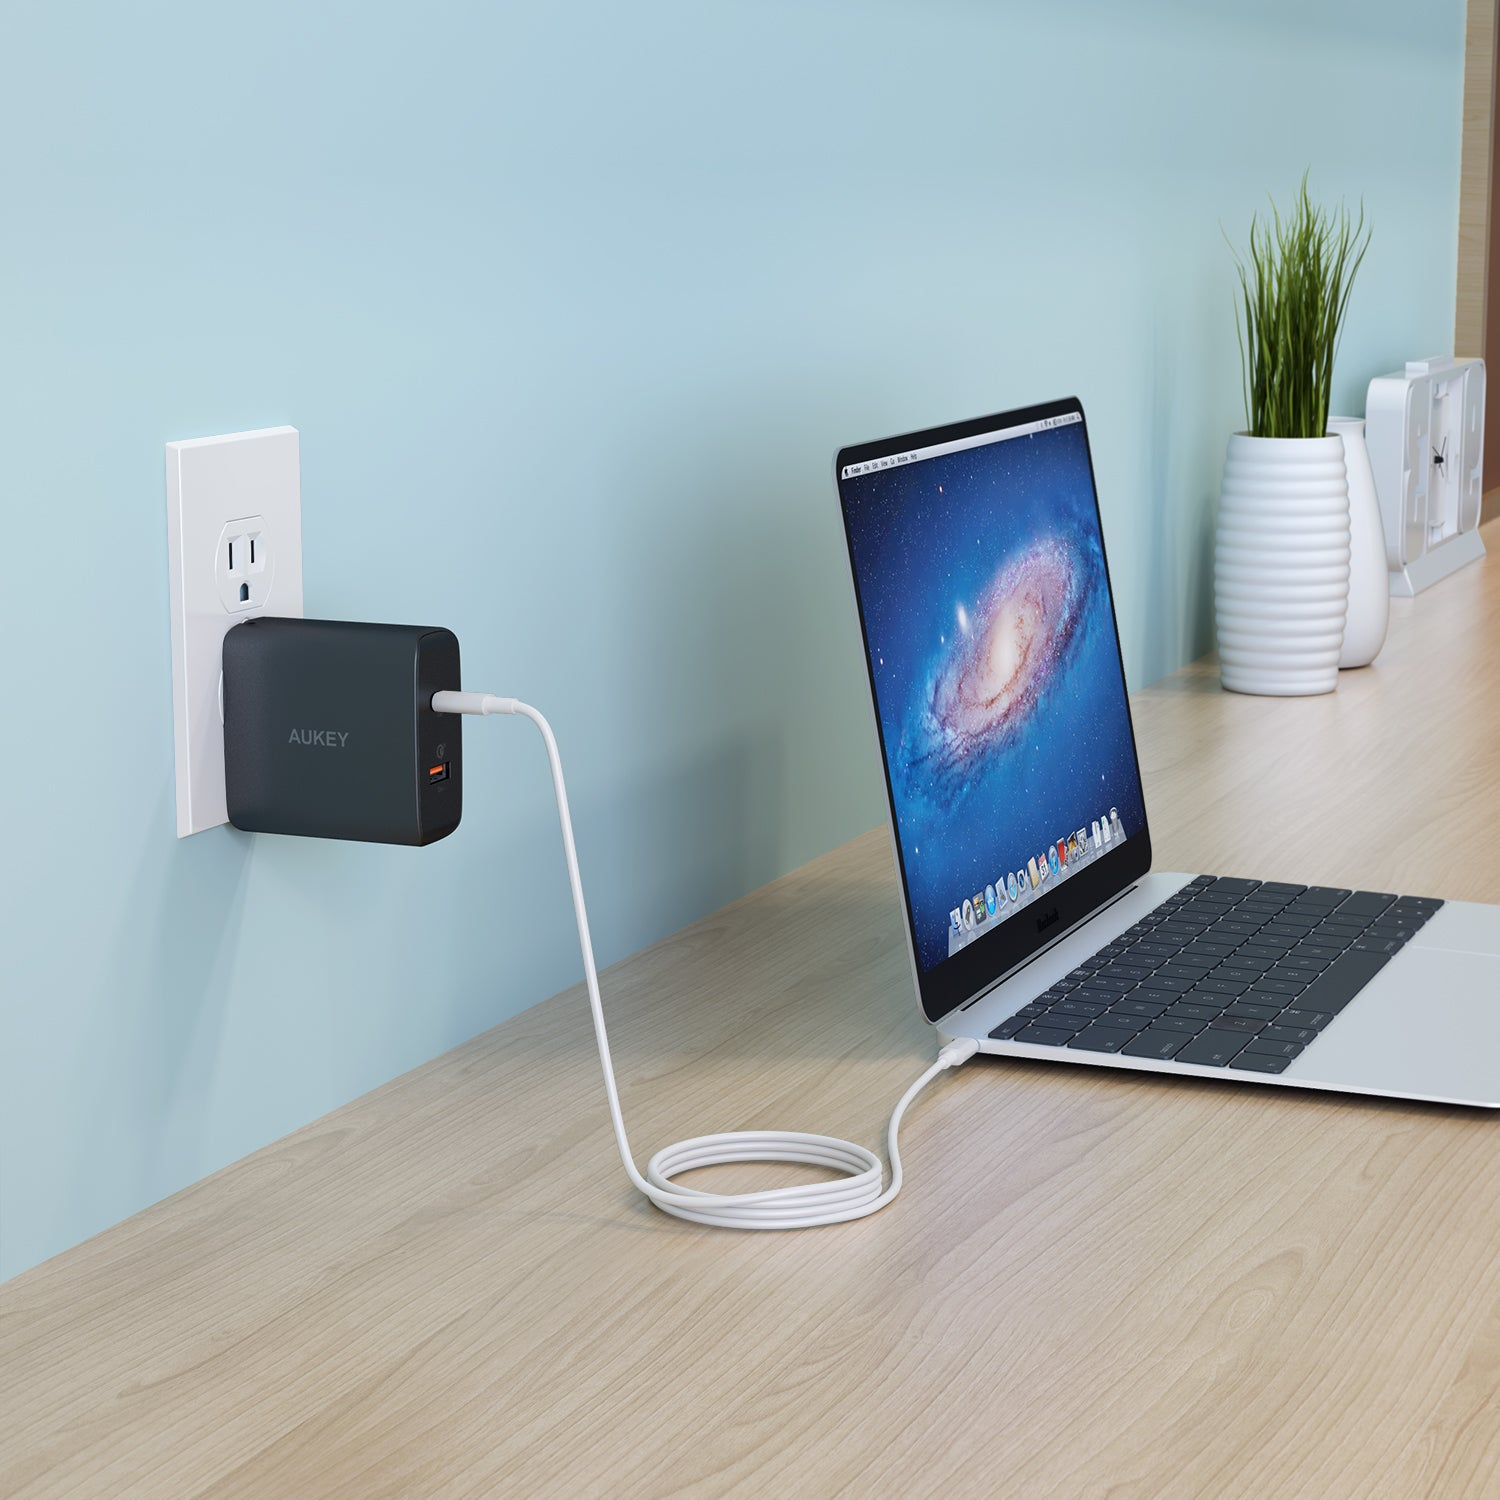 AUKEY PA-Y11 Amp Type-C with PD+ Quick Charge 3.0 48W Dual Ports Wall Charger